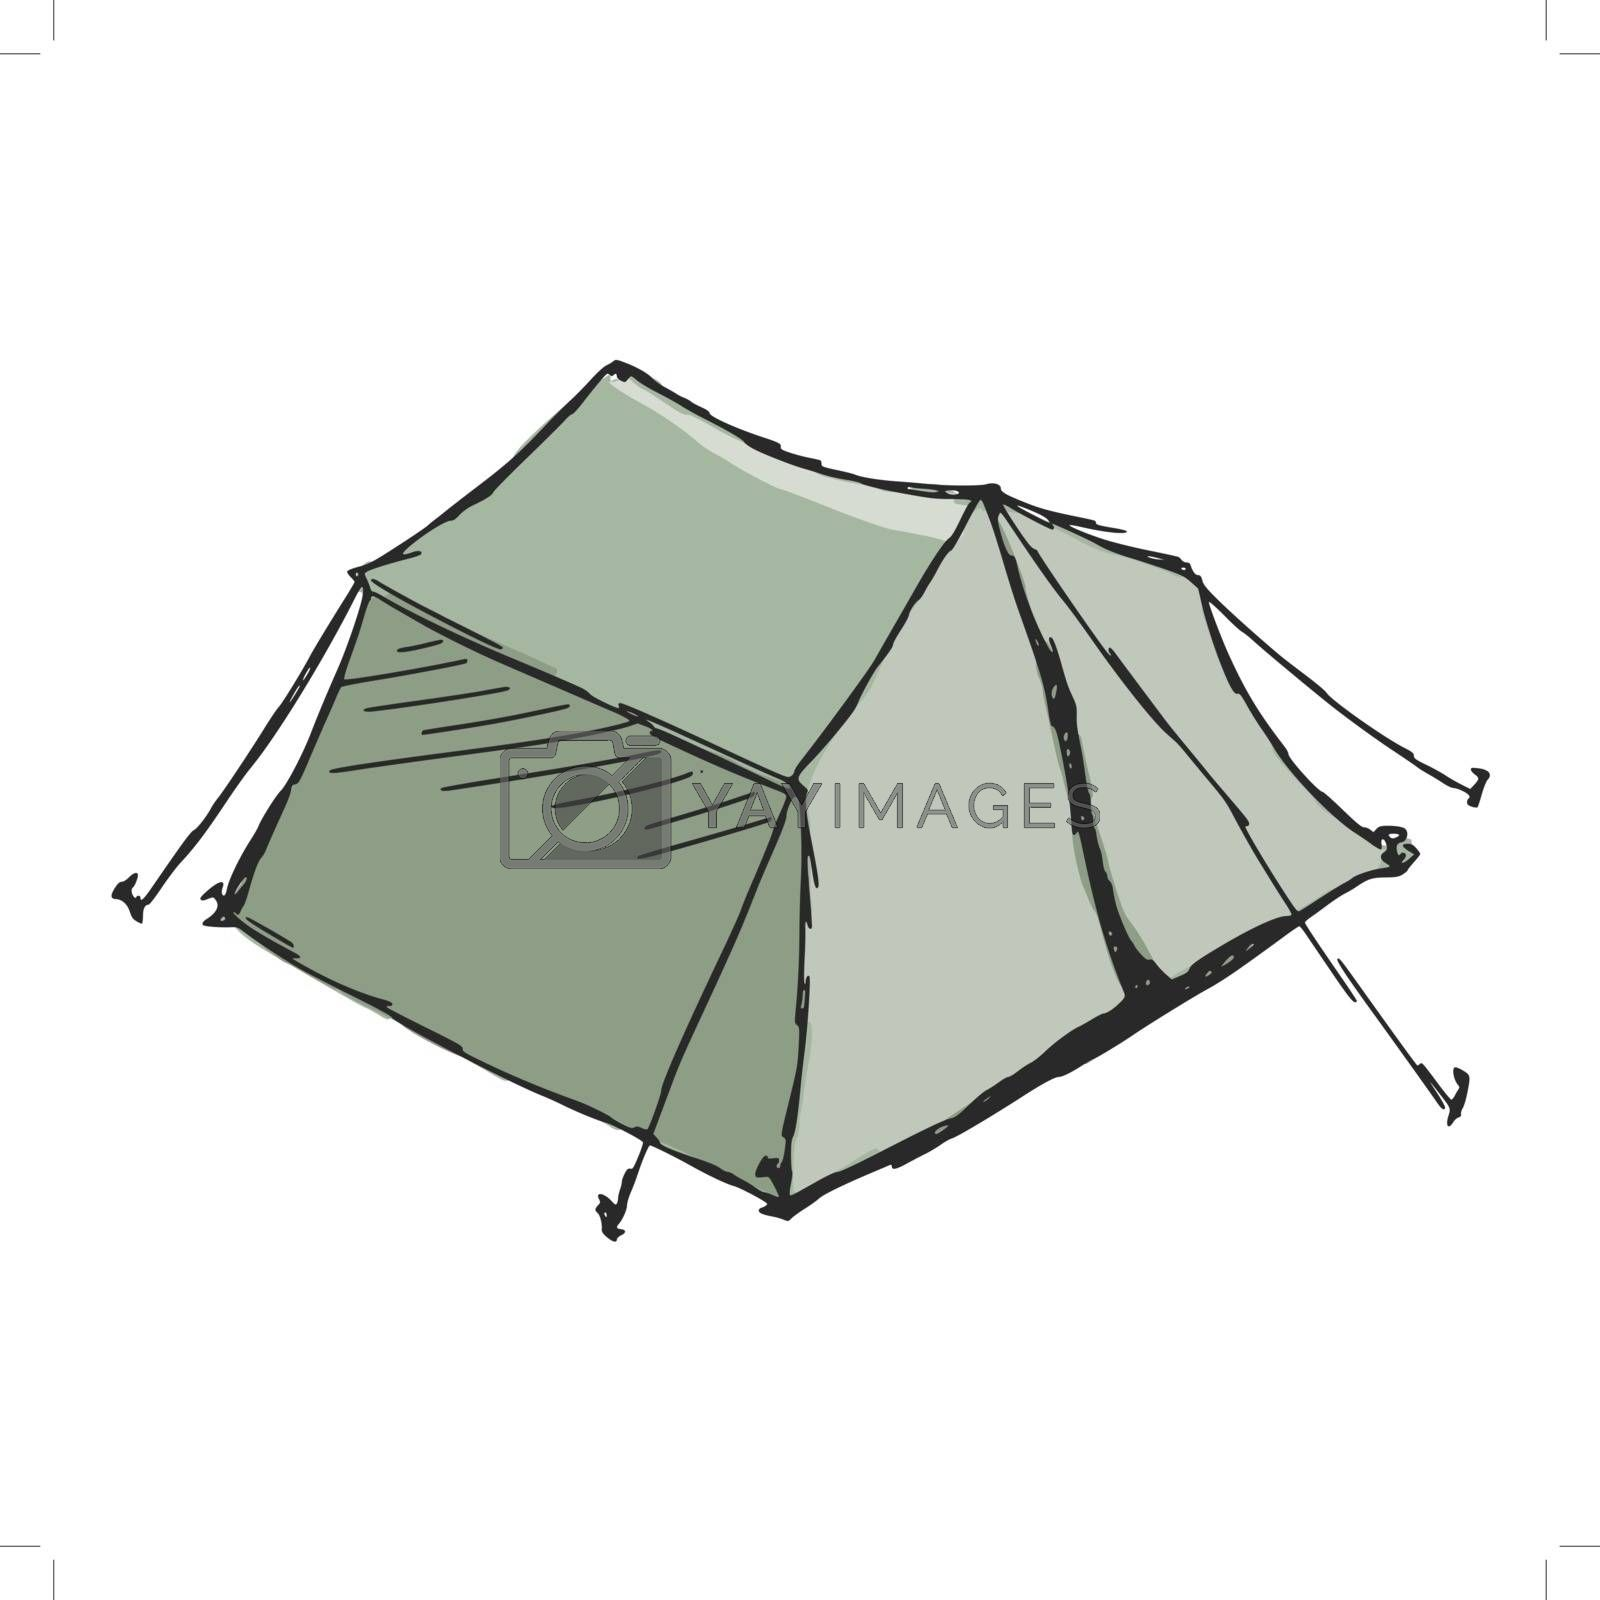 hand drawn, sketch, cartoon illustration of tent